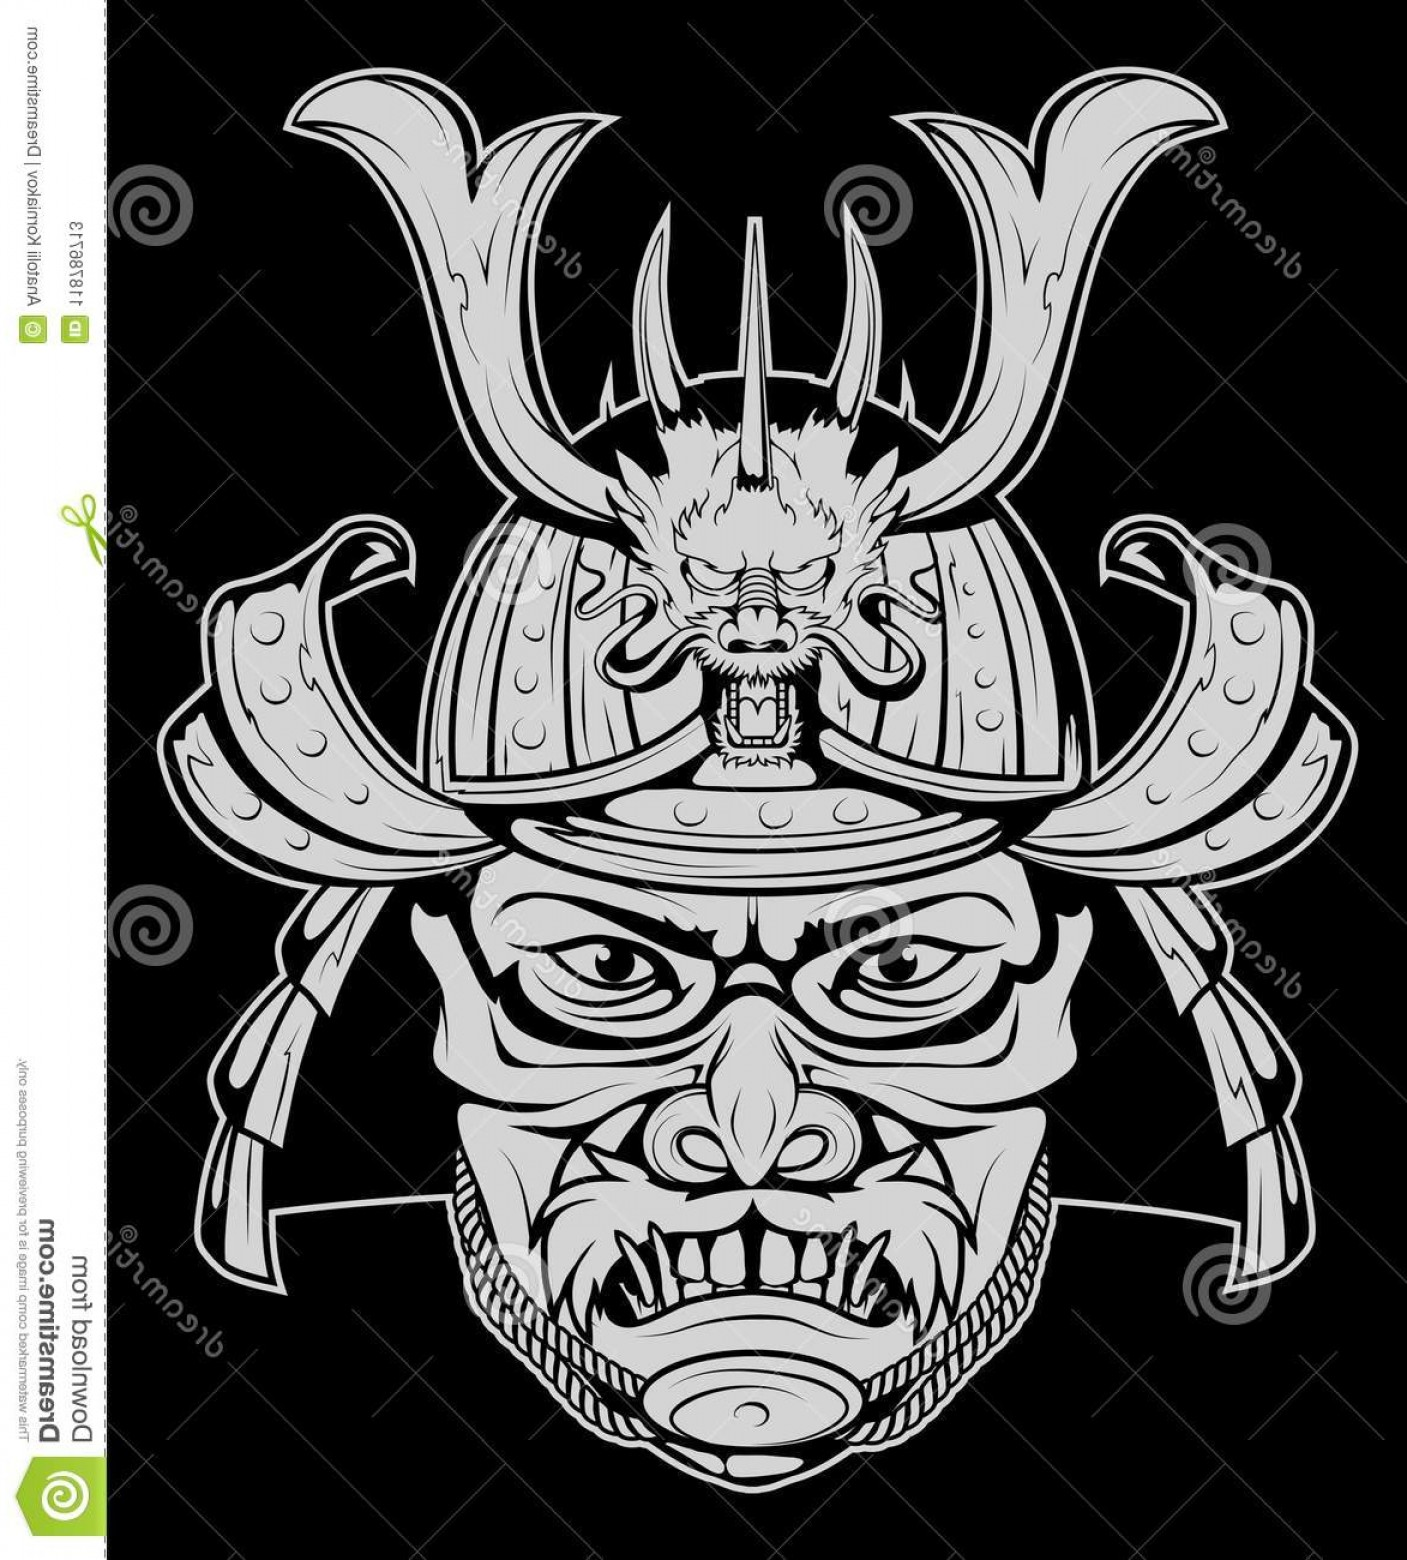 Samurai Warrior Vector: Samurai Design Mask Helmet Warrior Vector Graphics To Image